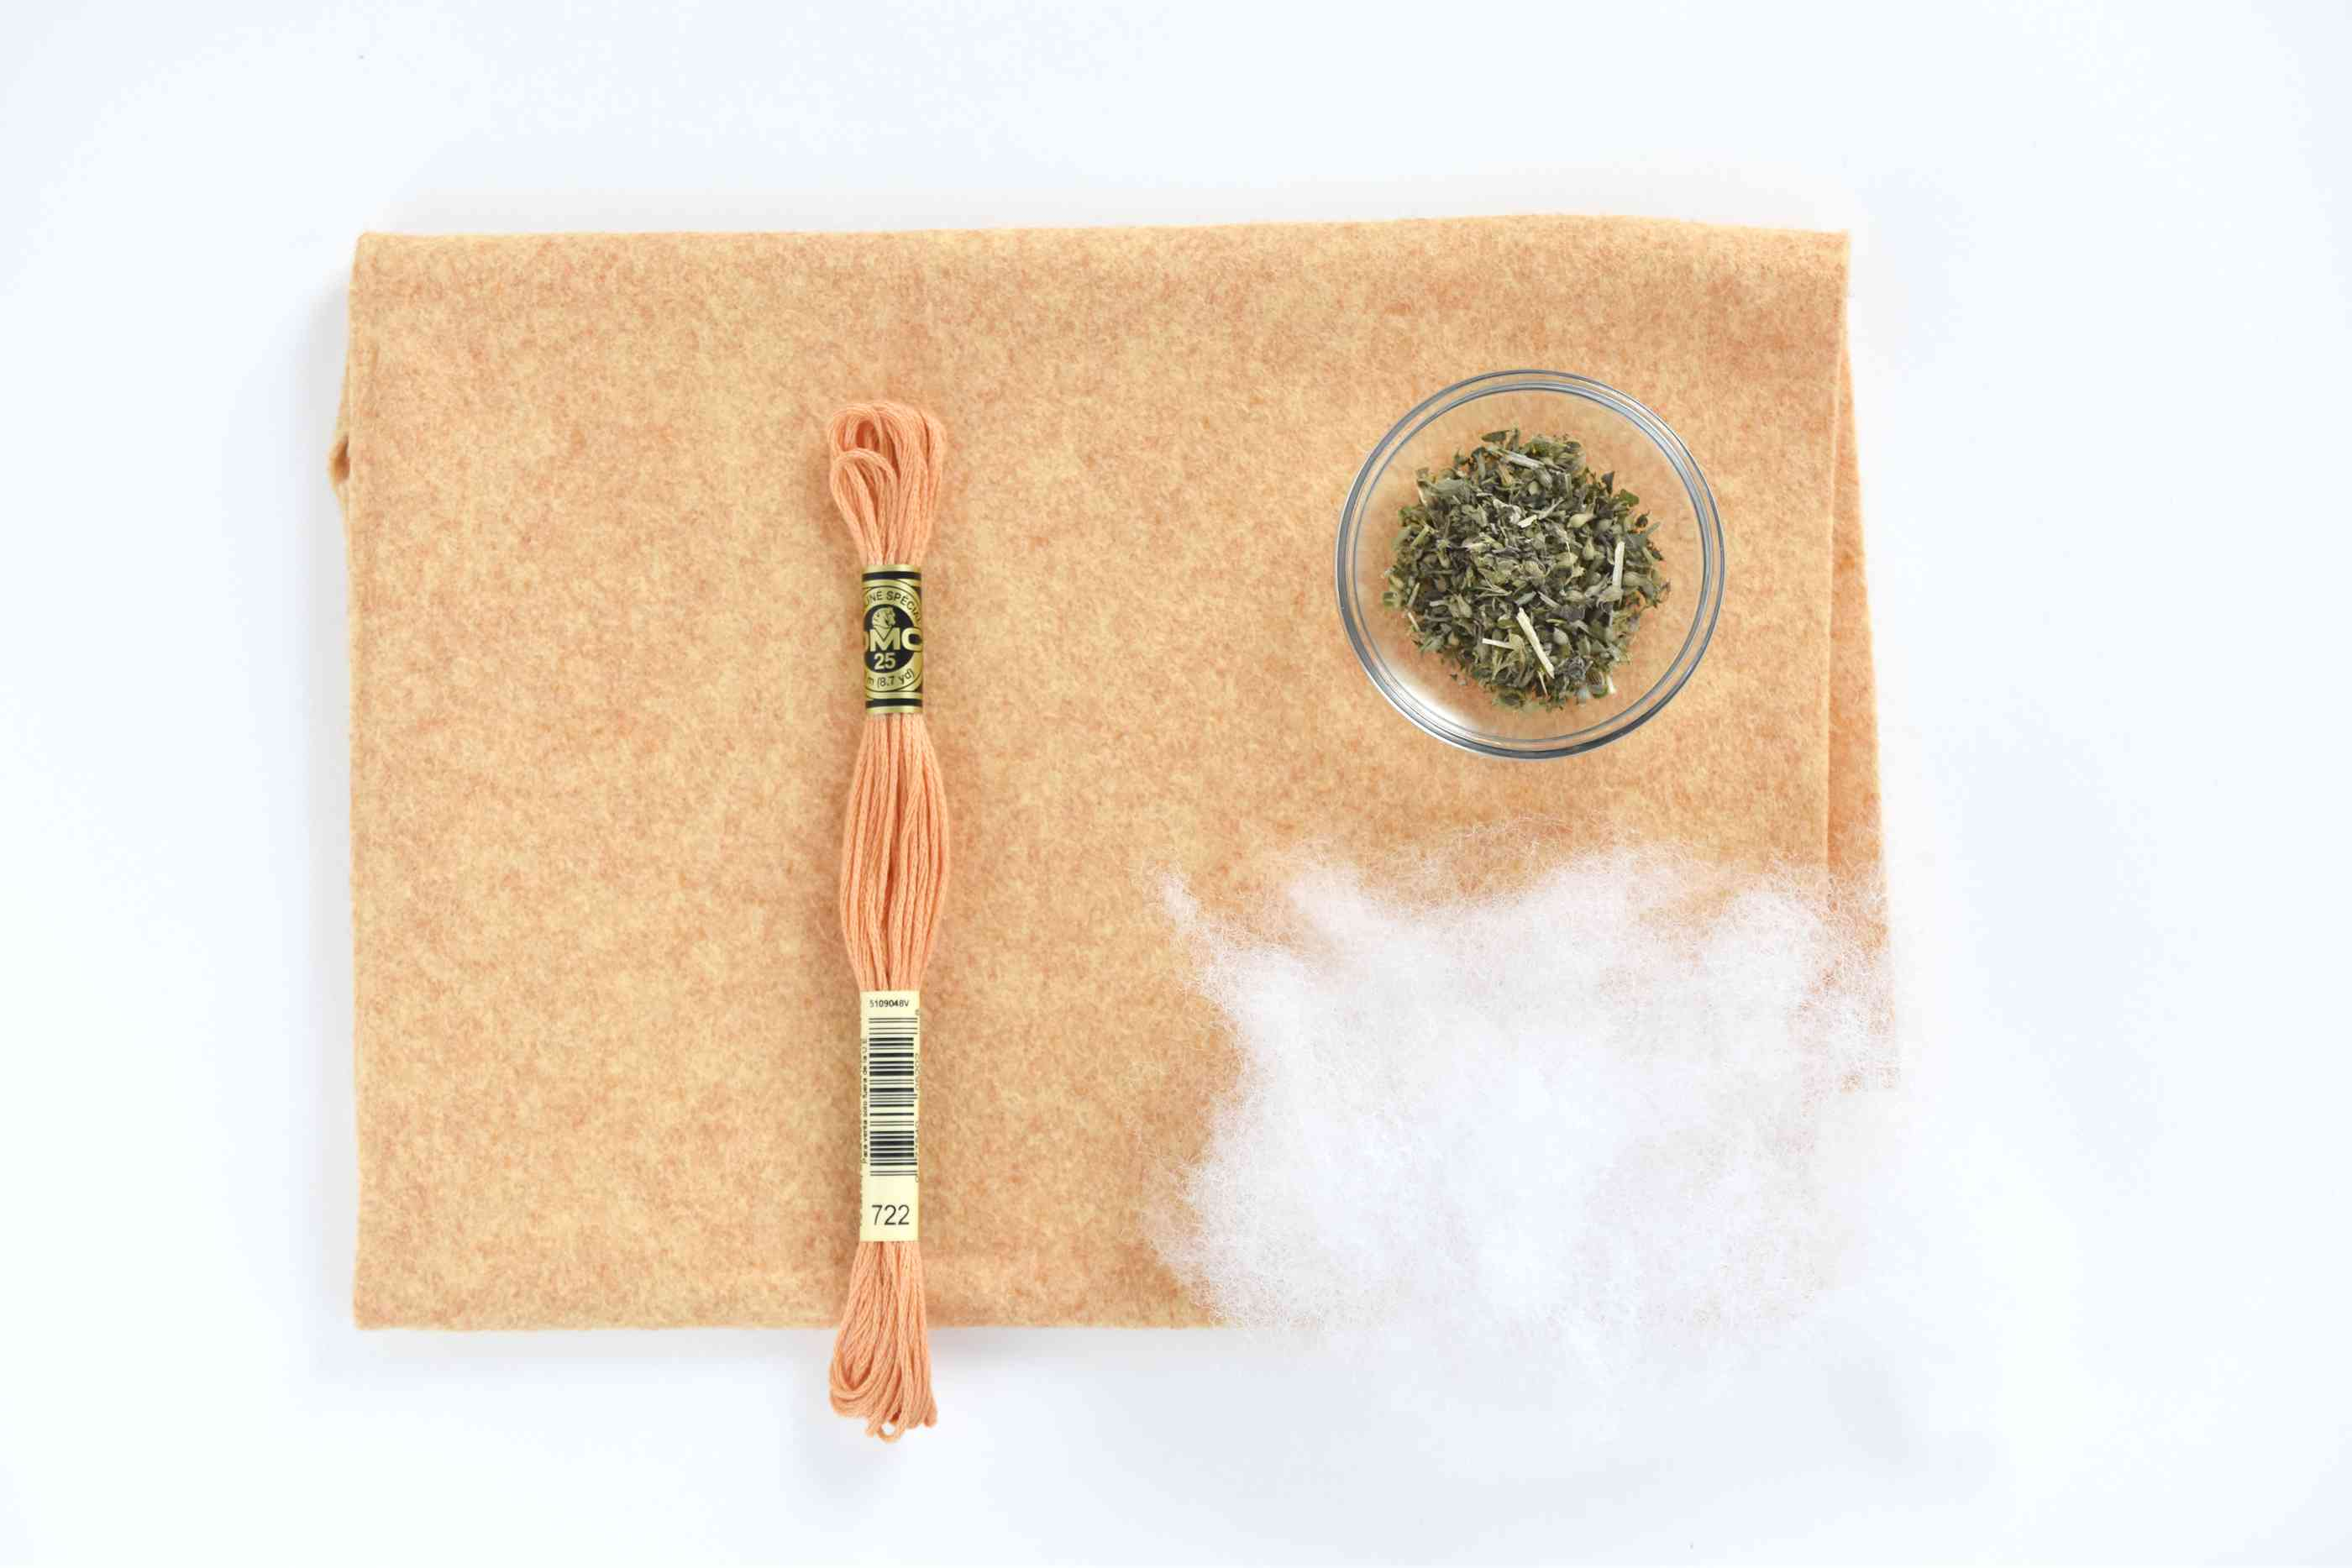 DIY catnip mouse toy supplies